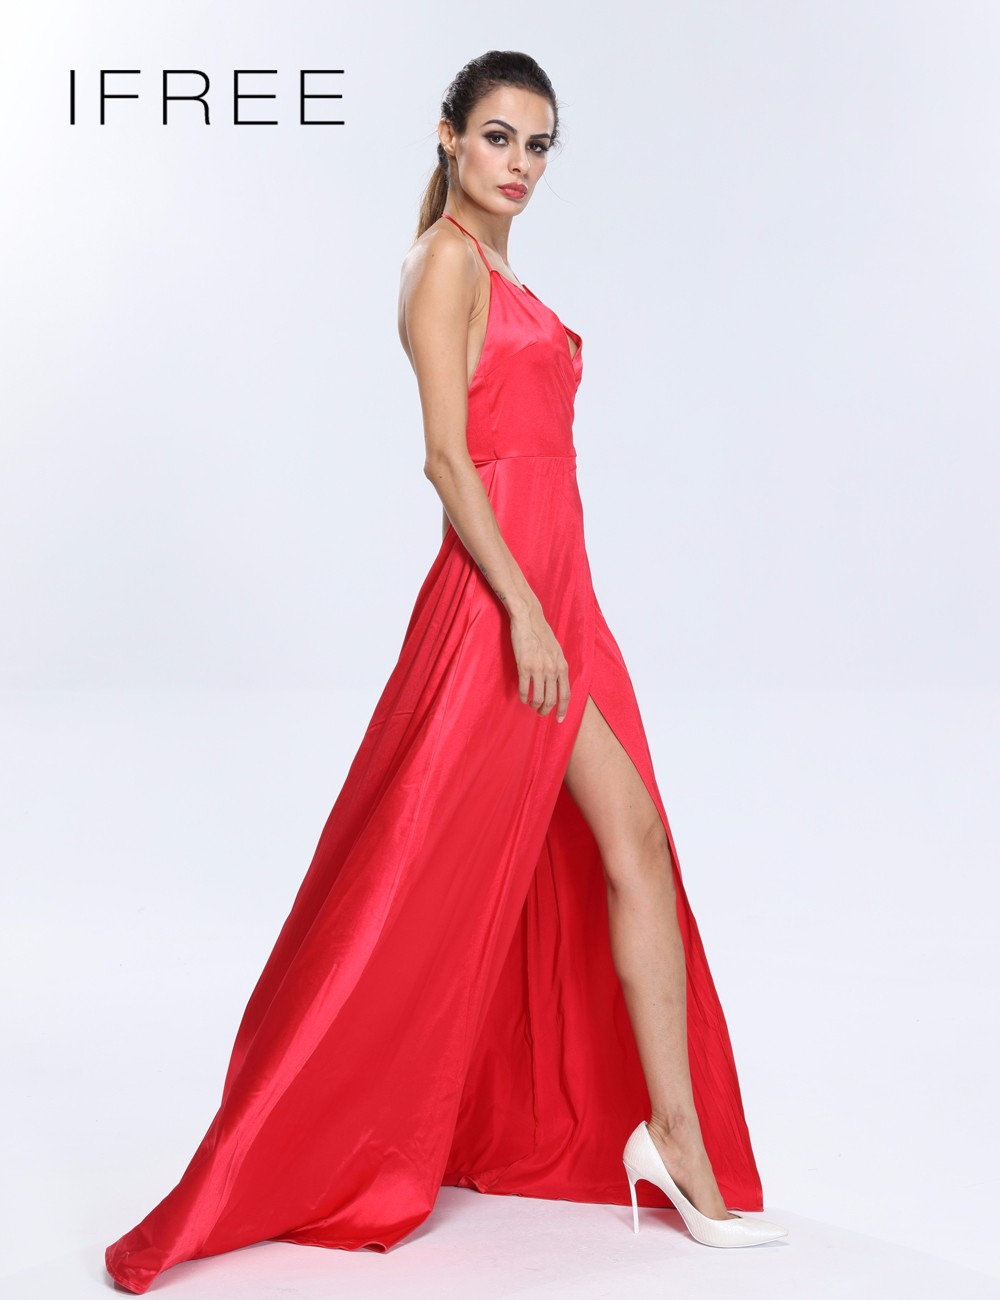 2017 The Best High High Slit Woman Celebrity Red Carpet